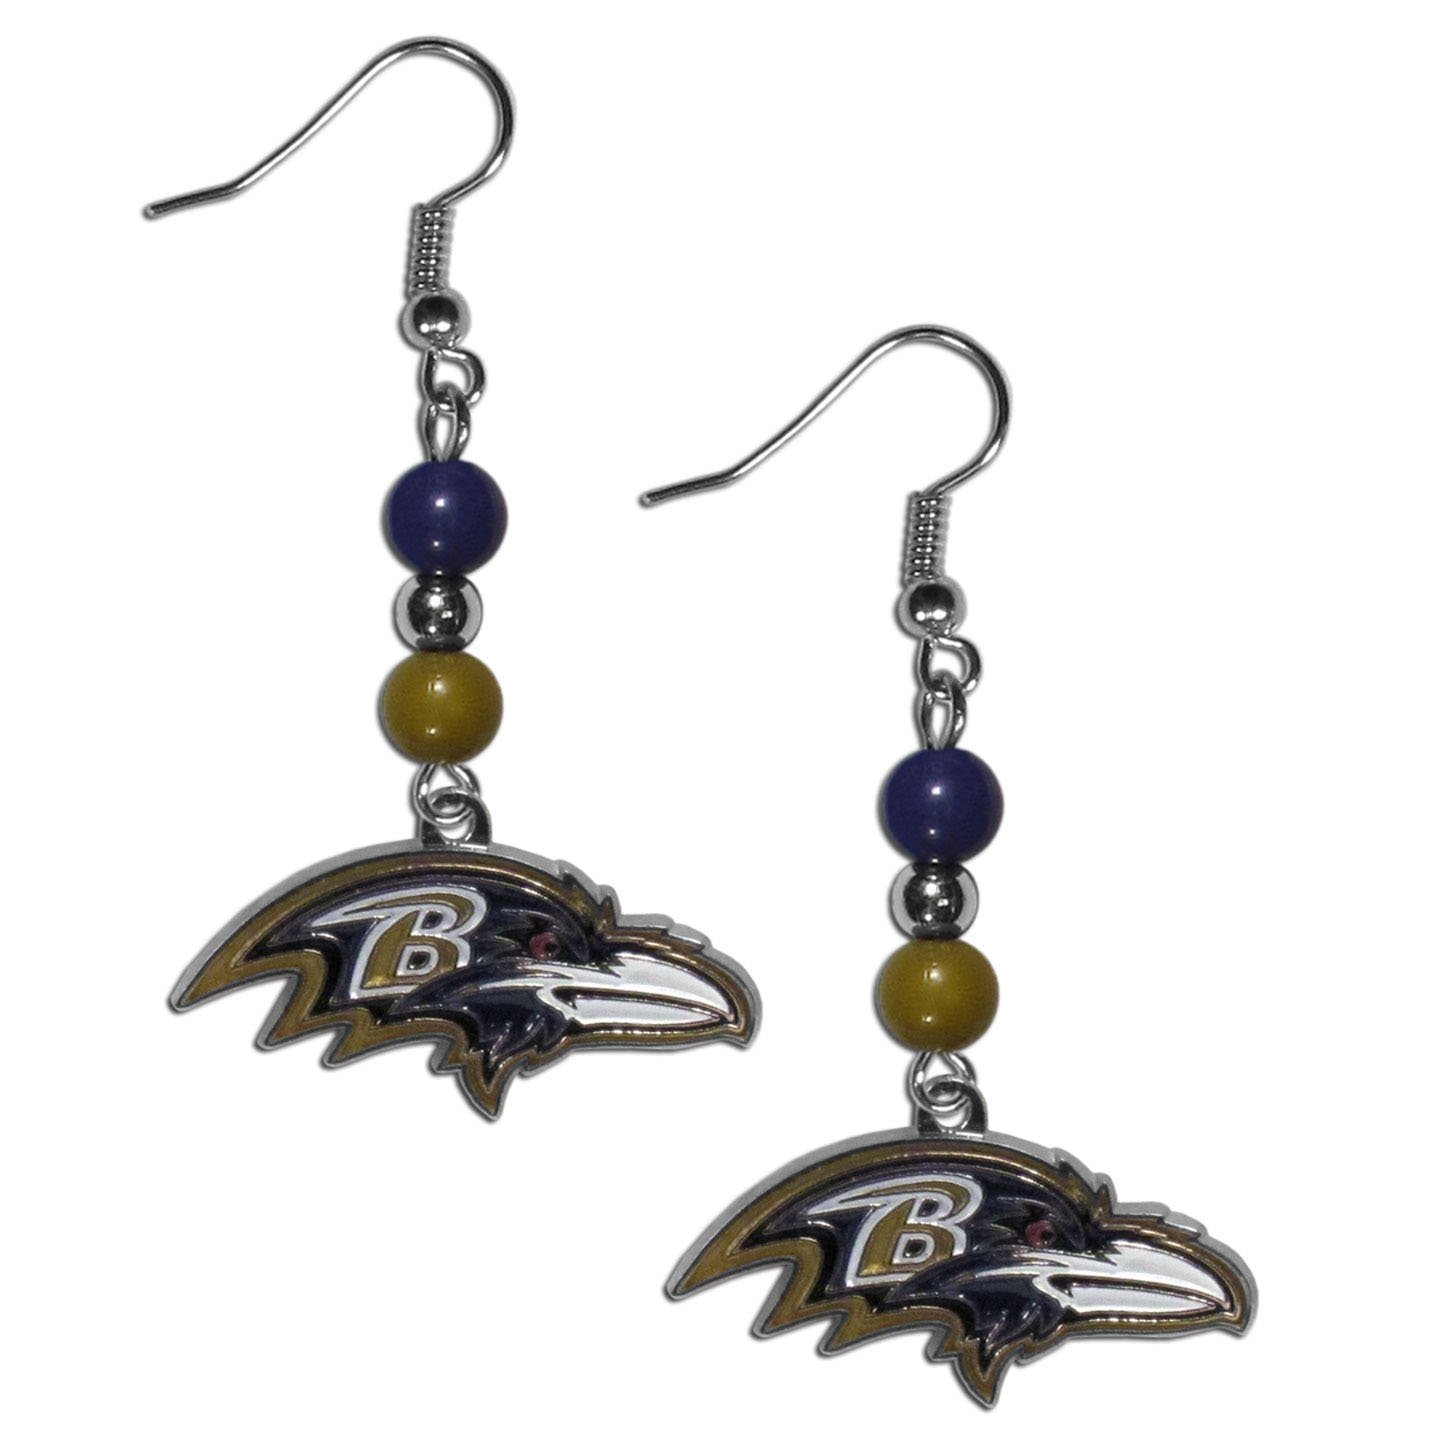 Baltimore Ravens Fan Bead Dangle Earrings - Love your team, show it off with our Baltimore Ravens bead dangle earrings! These super cute earrings hang approximately 2 inches and features 2 team colored beads and a high polish team charm. A must have for game day!